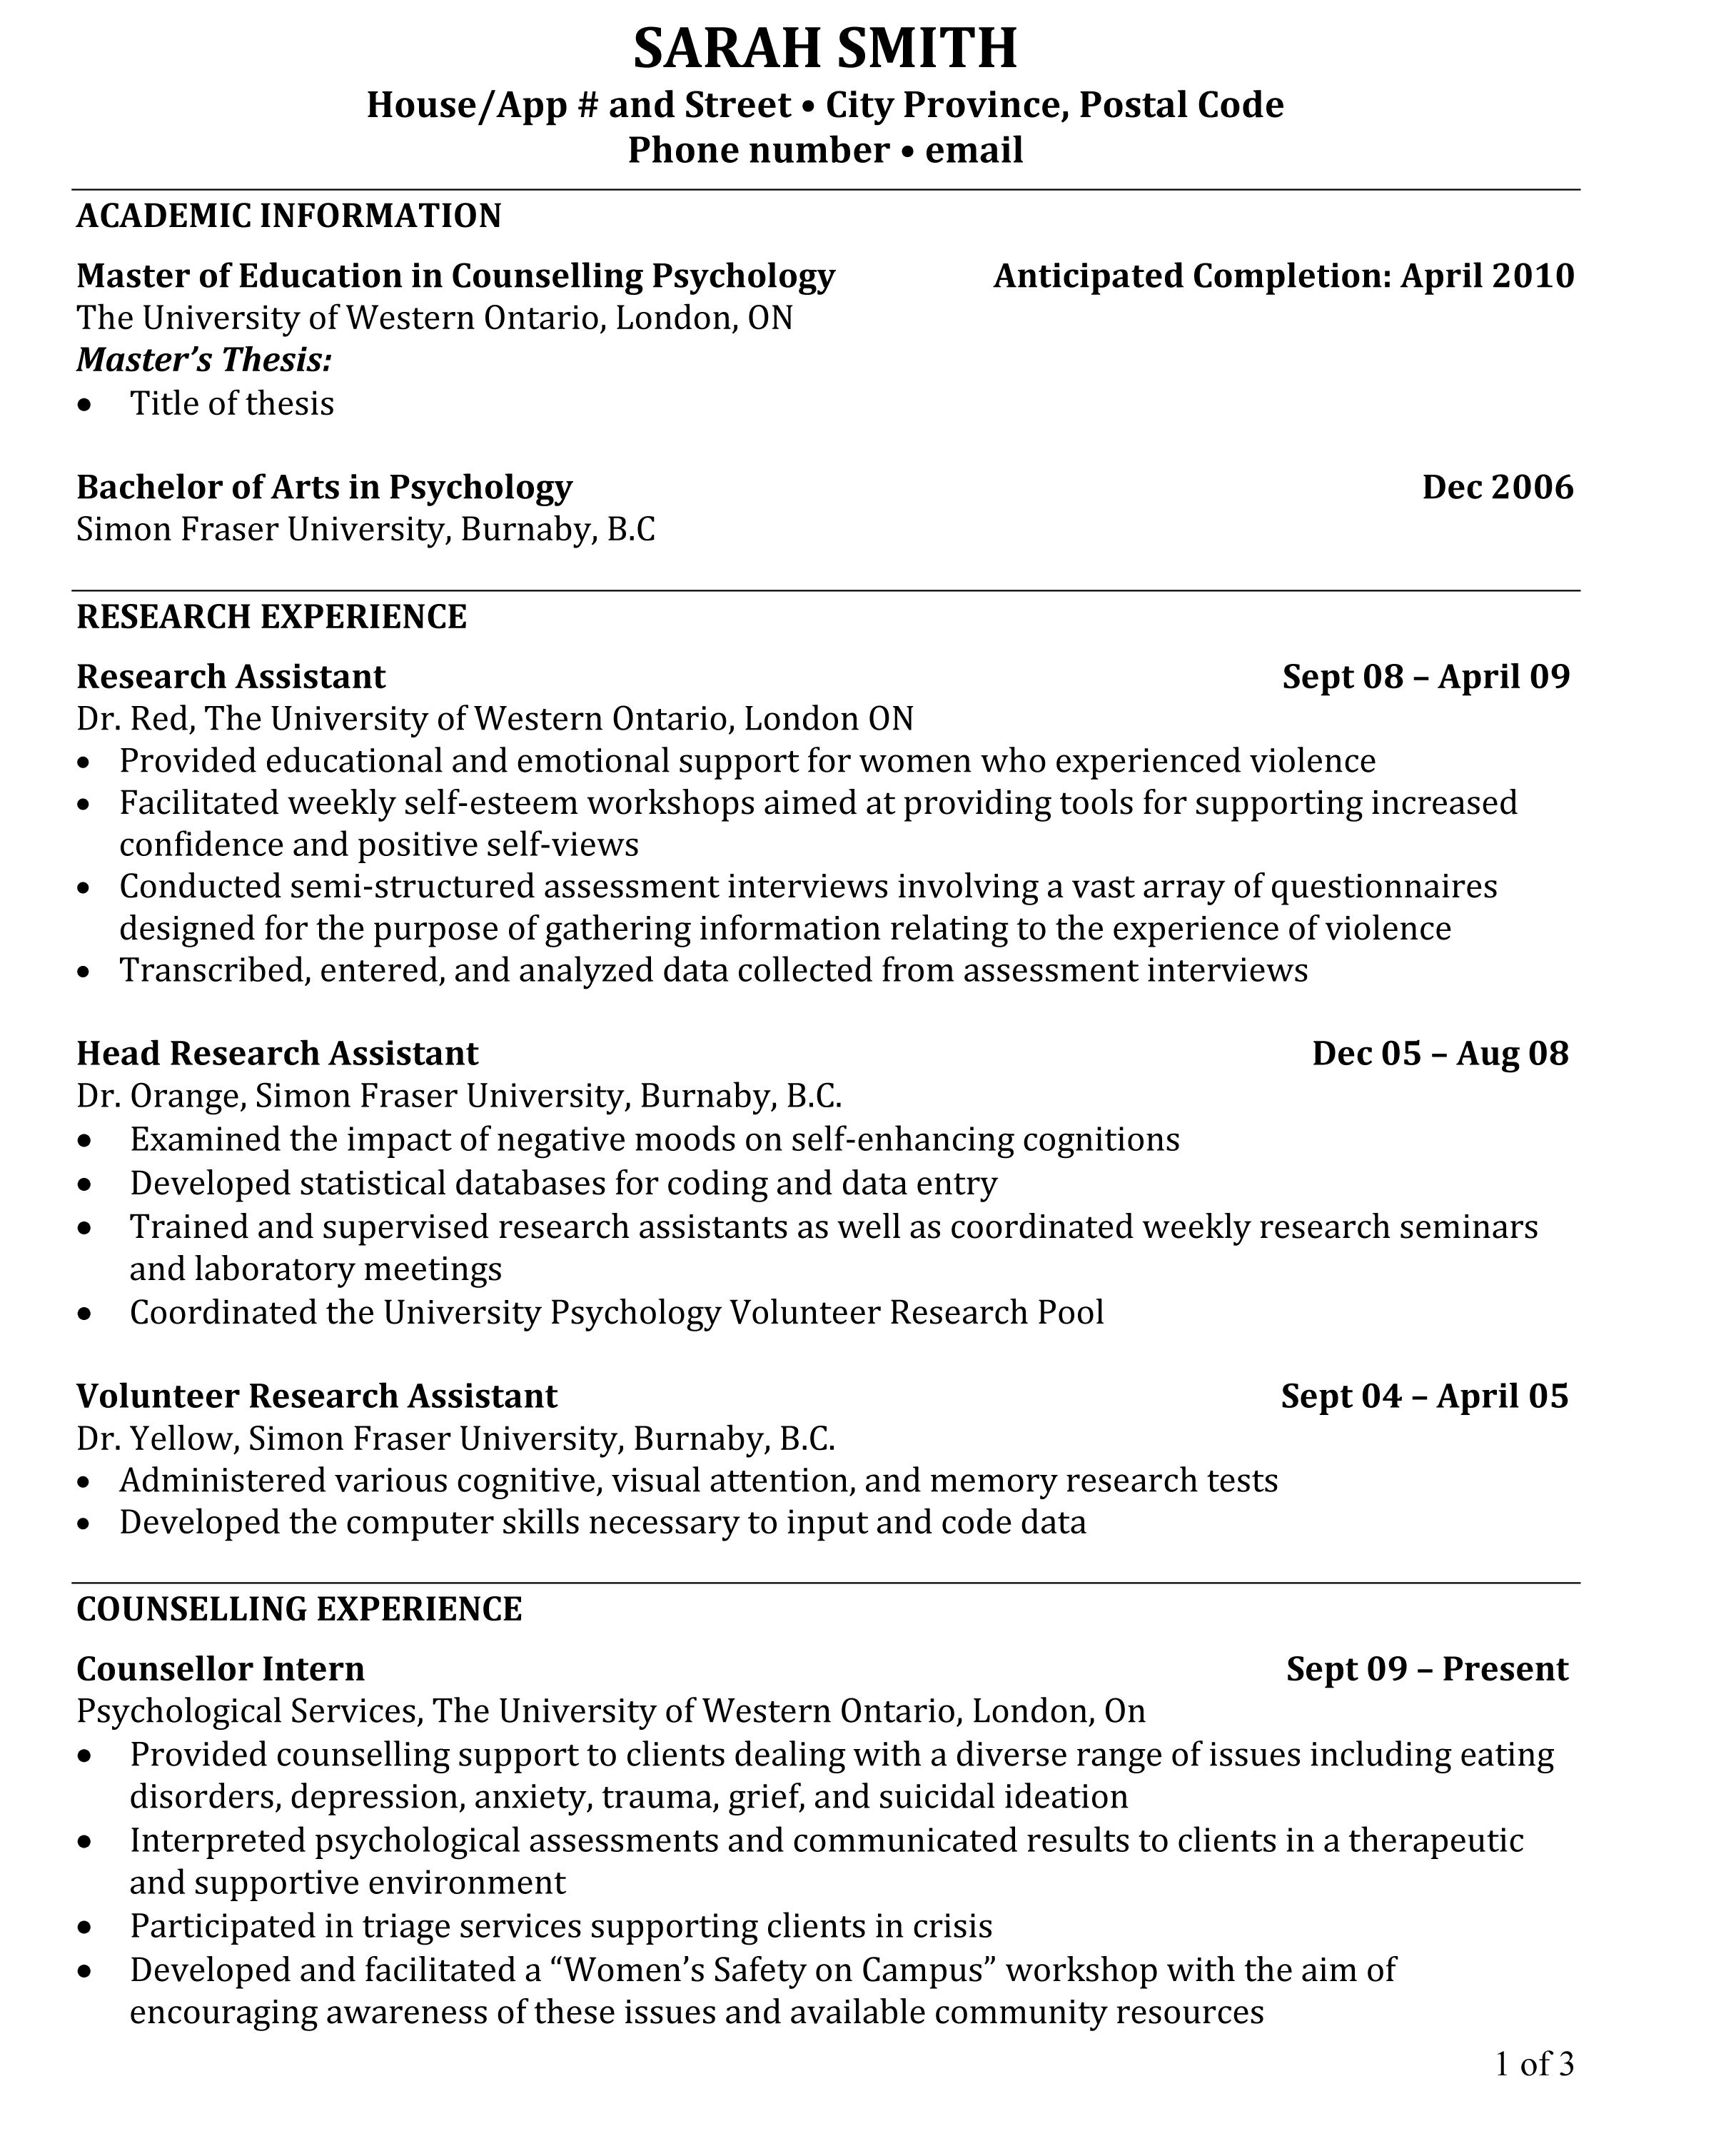 Phd Cv The Below Is Much Closer To My Experience Level HttpWww